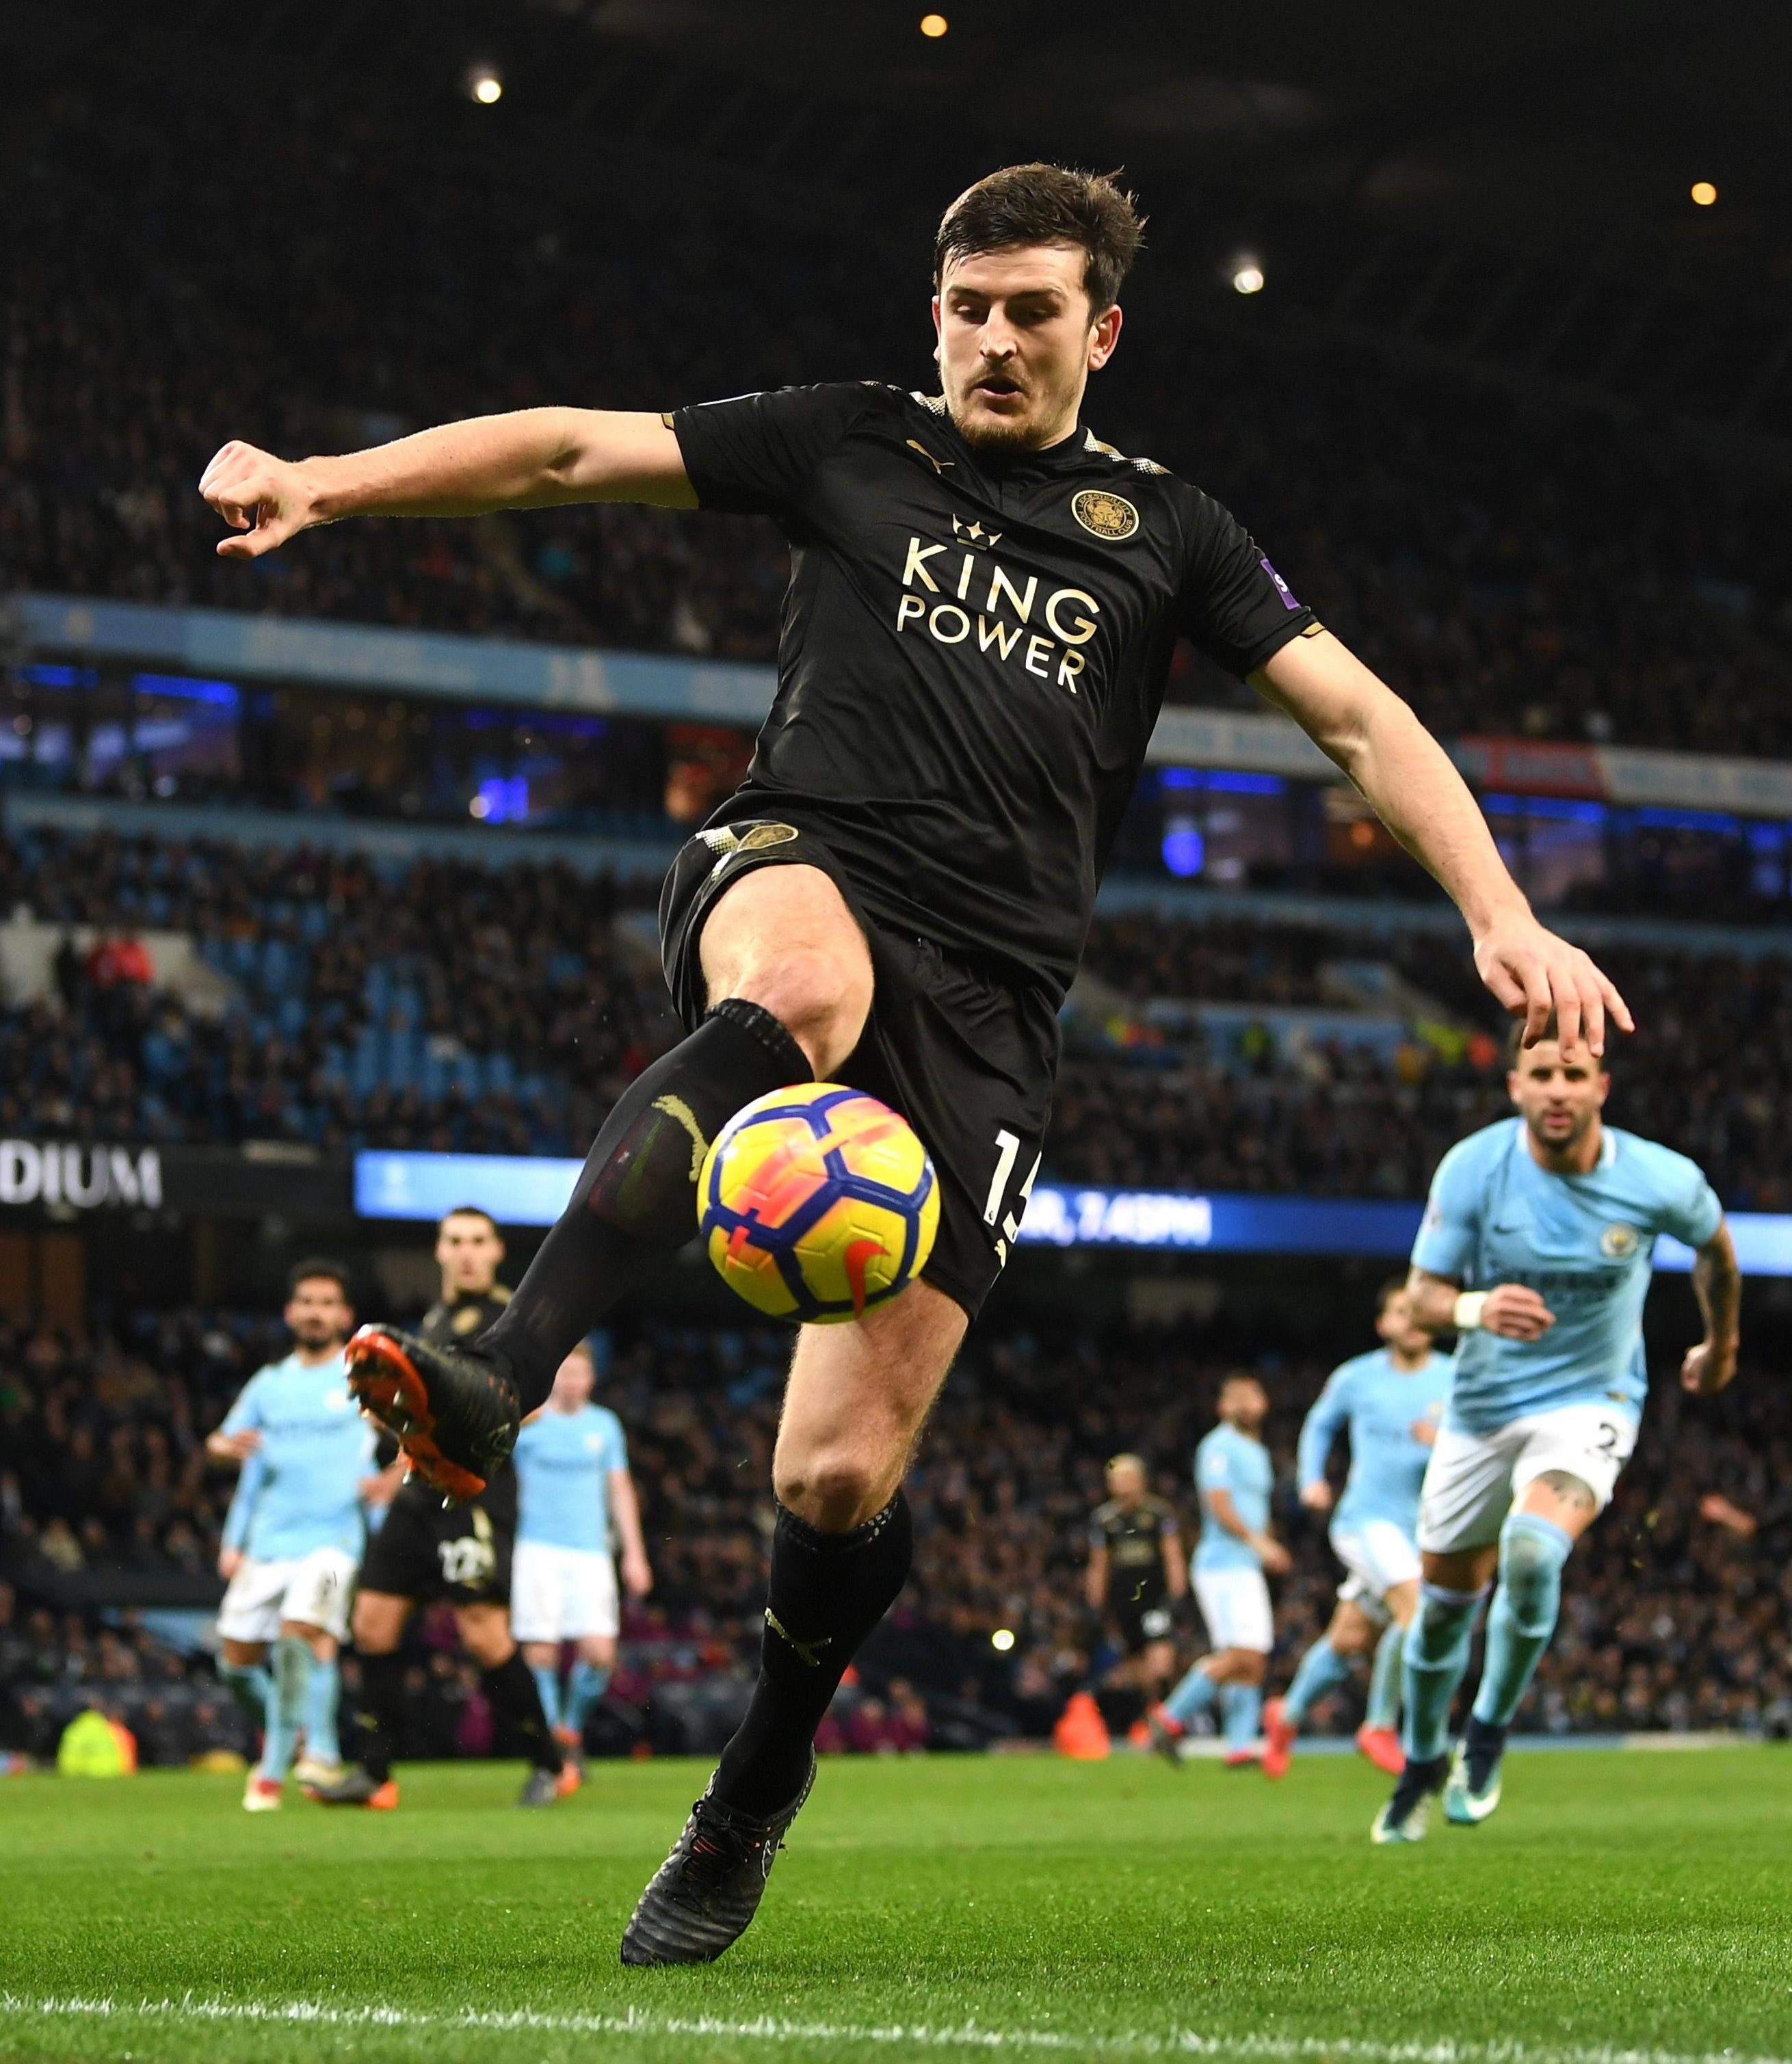 Leicester defender Harry Maguire has been linked with a move to Manchester United